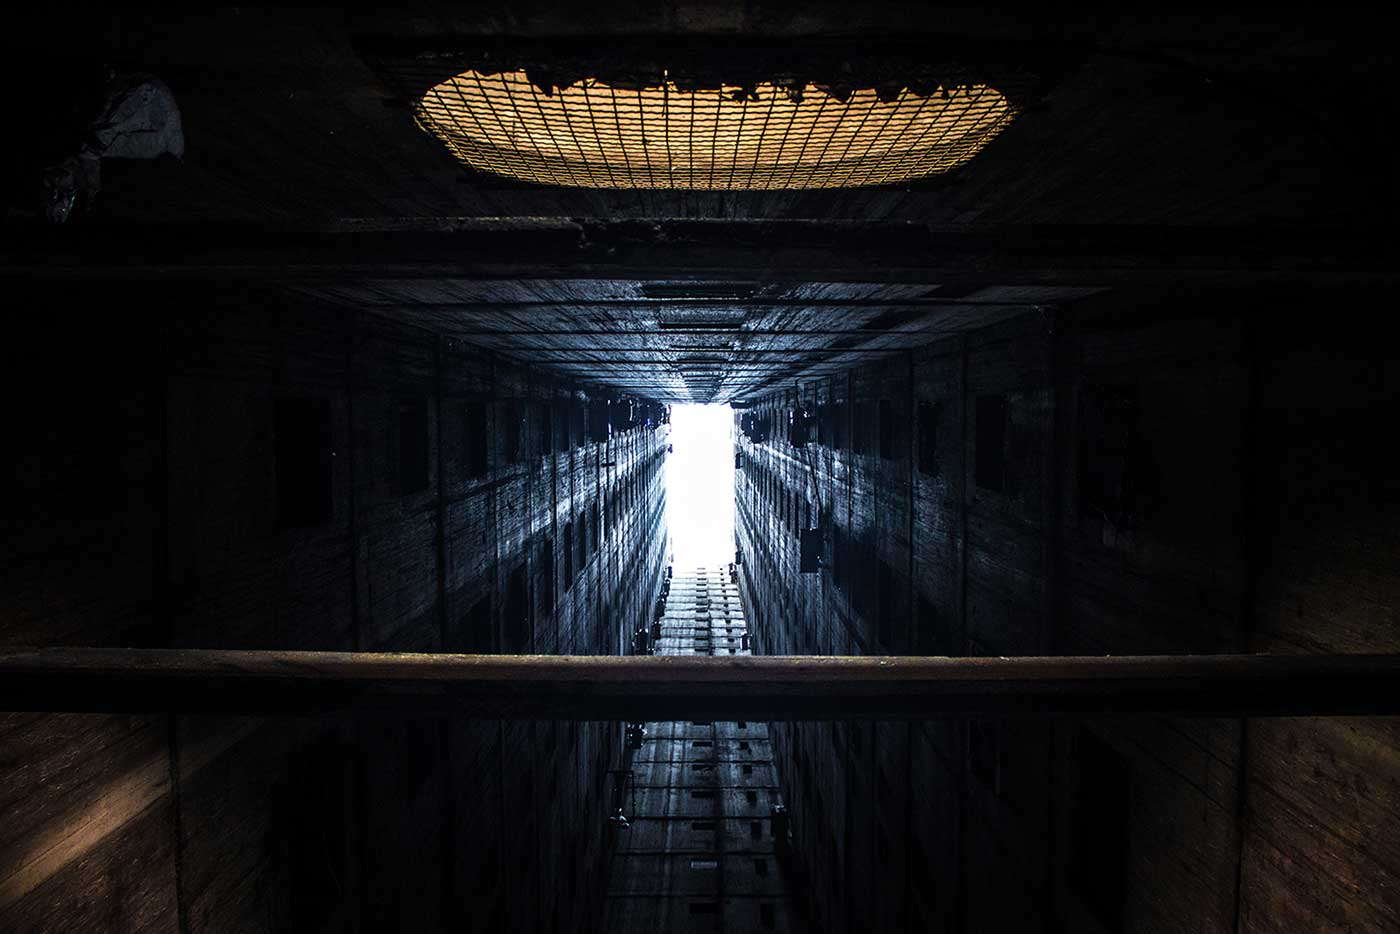 At the heart of the Genex Tower, a ventilation shaft reaches all the way up to the sky.